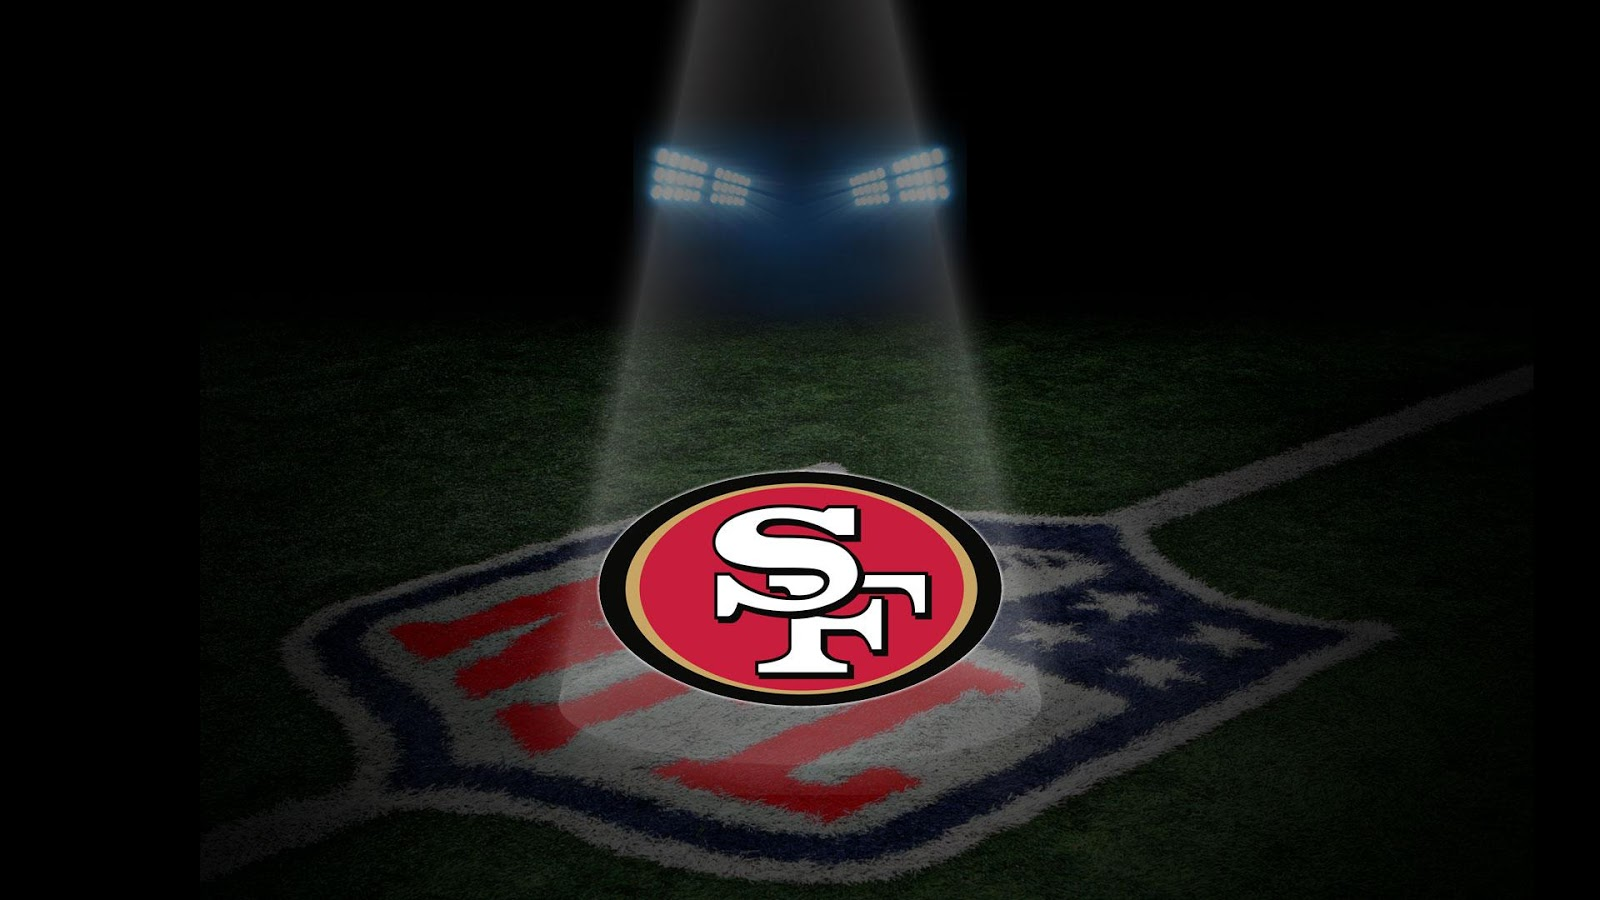 ... 28 san francisco 49ers wallpaper c49ers free computer wallpapers